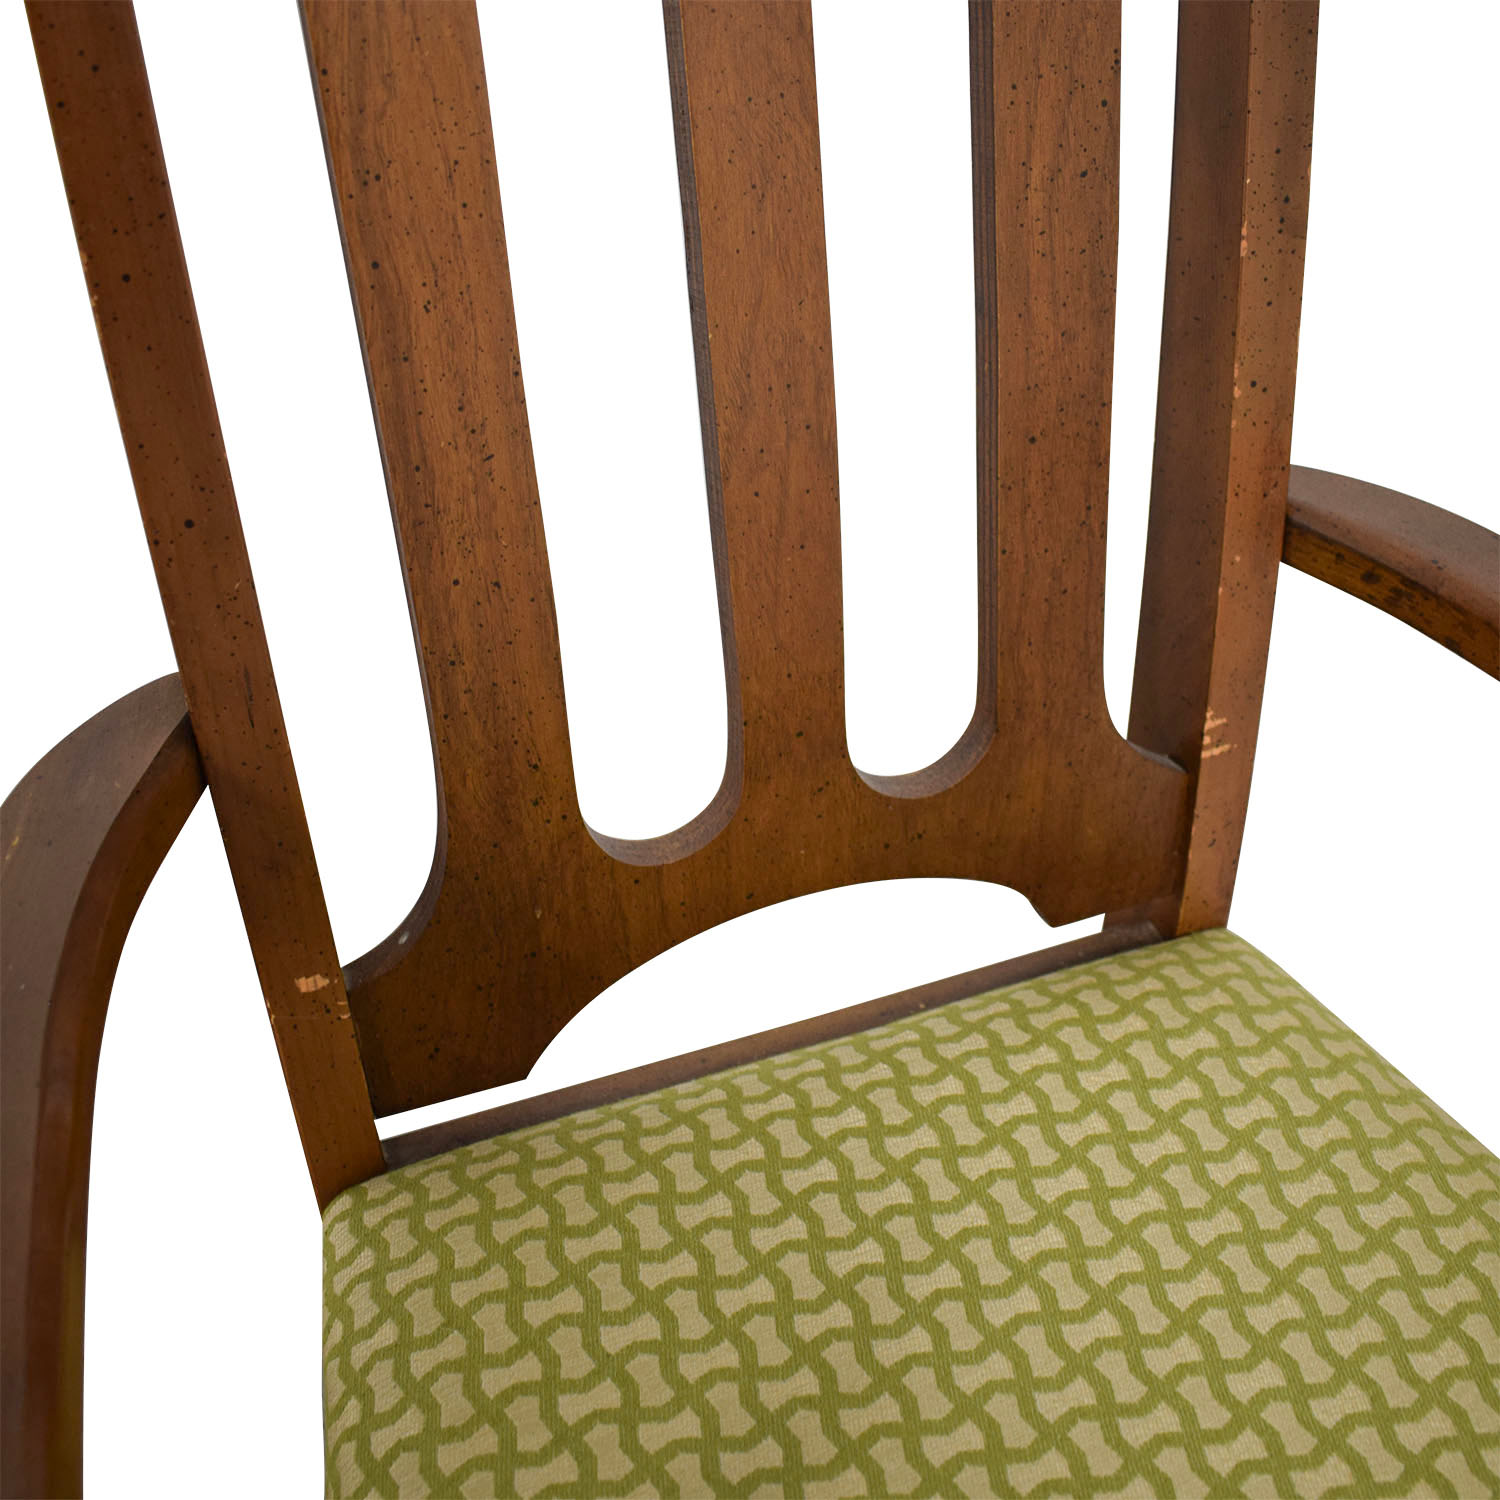 Bassett Furniture Mid-Century Green Upholstered Dining Chairs sale